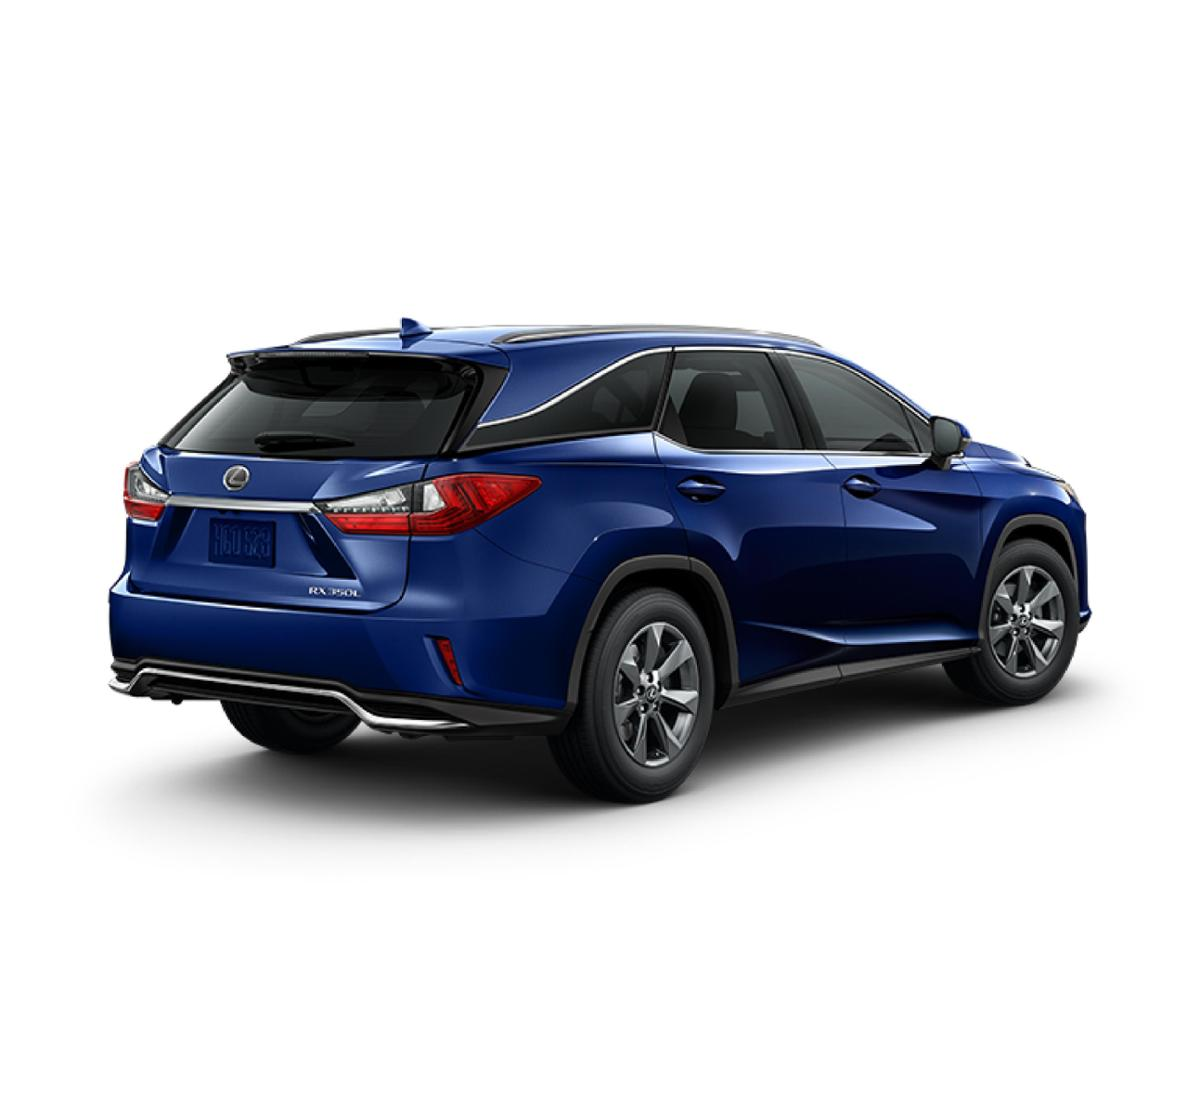 new 2018 lexus rx 350l premium at new country lexus of latham your upstate ny lexus dealer rx19481. Black Bedroom Furniture Sets. Home Design Ideas